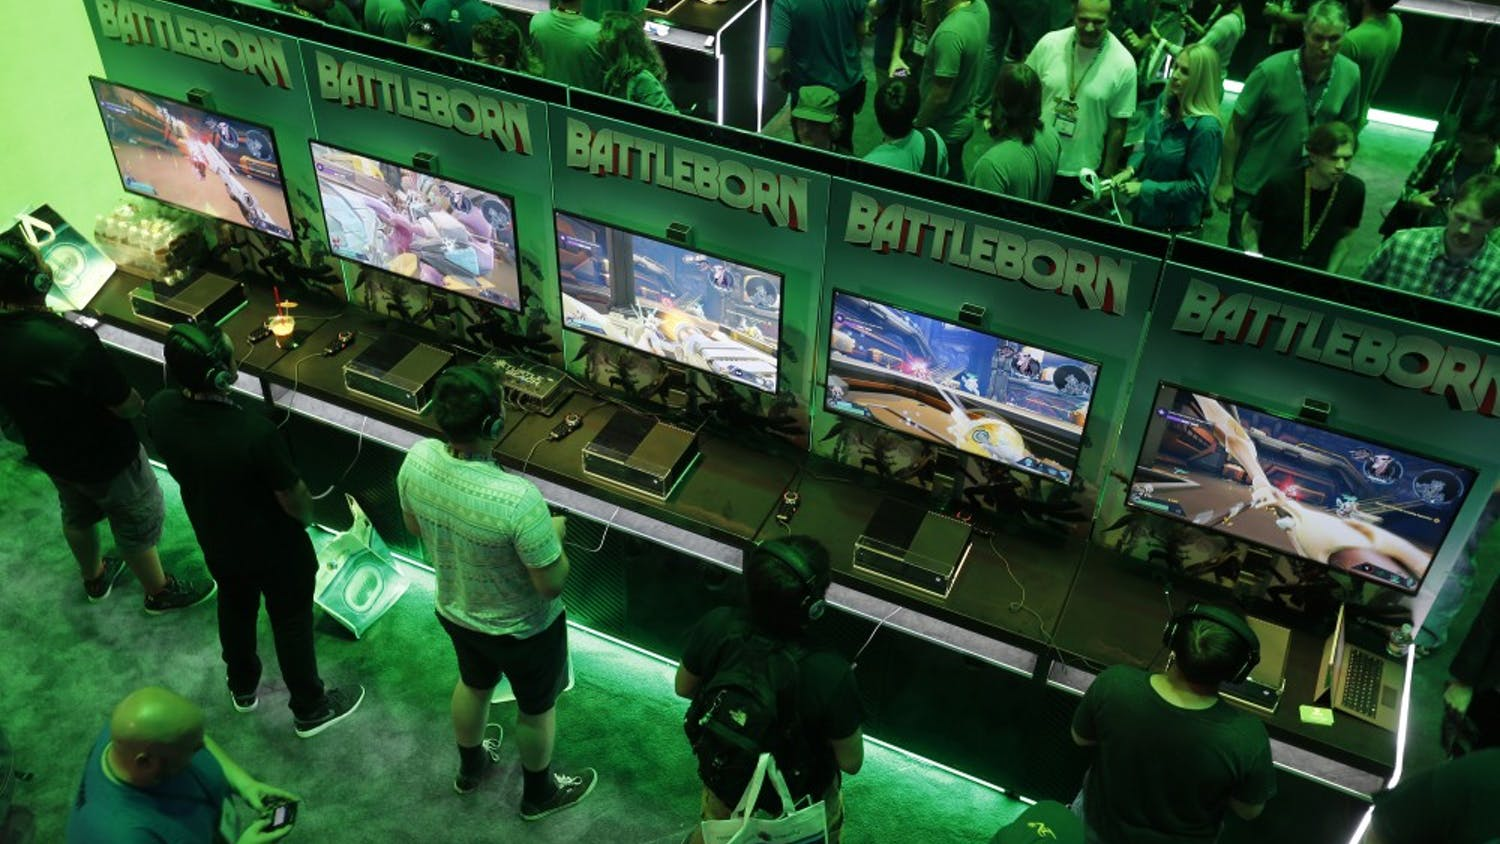 A large crowd of video game enthusiasts fill the Xbox game booth to try out new games during the first day of three-day E3 Electronic Entertainment Expo., annual video game conference and show at the Los Angeles Convention Center on June 16, 2015 in Los Angeles. (Allen J. Schaben/Los Angeles Times/TNS)